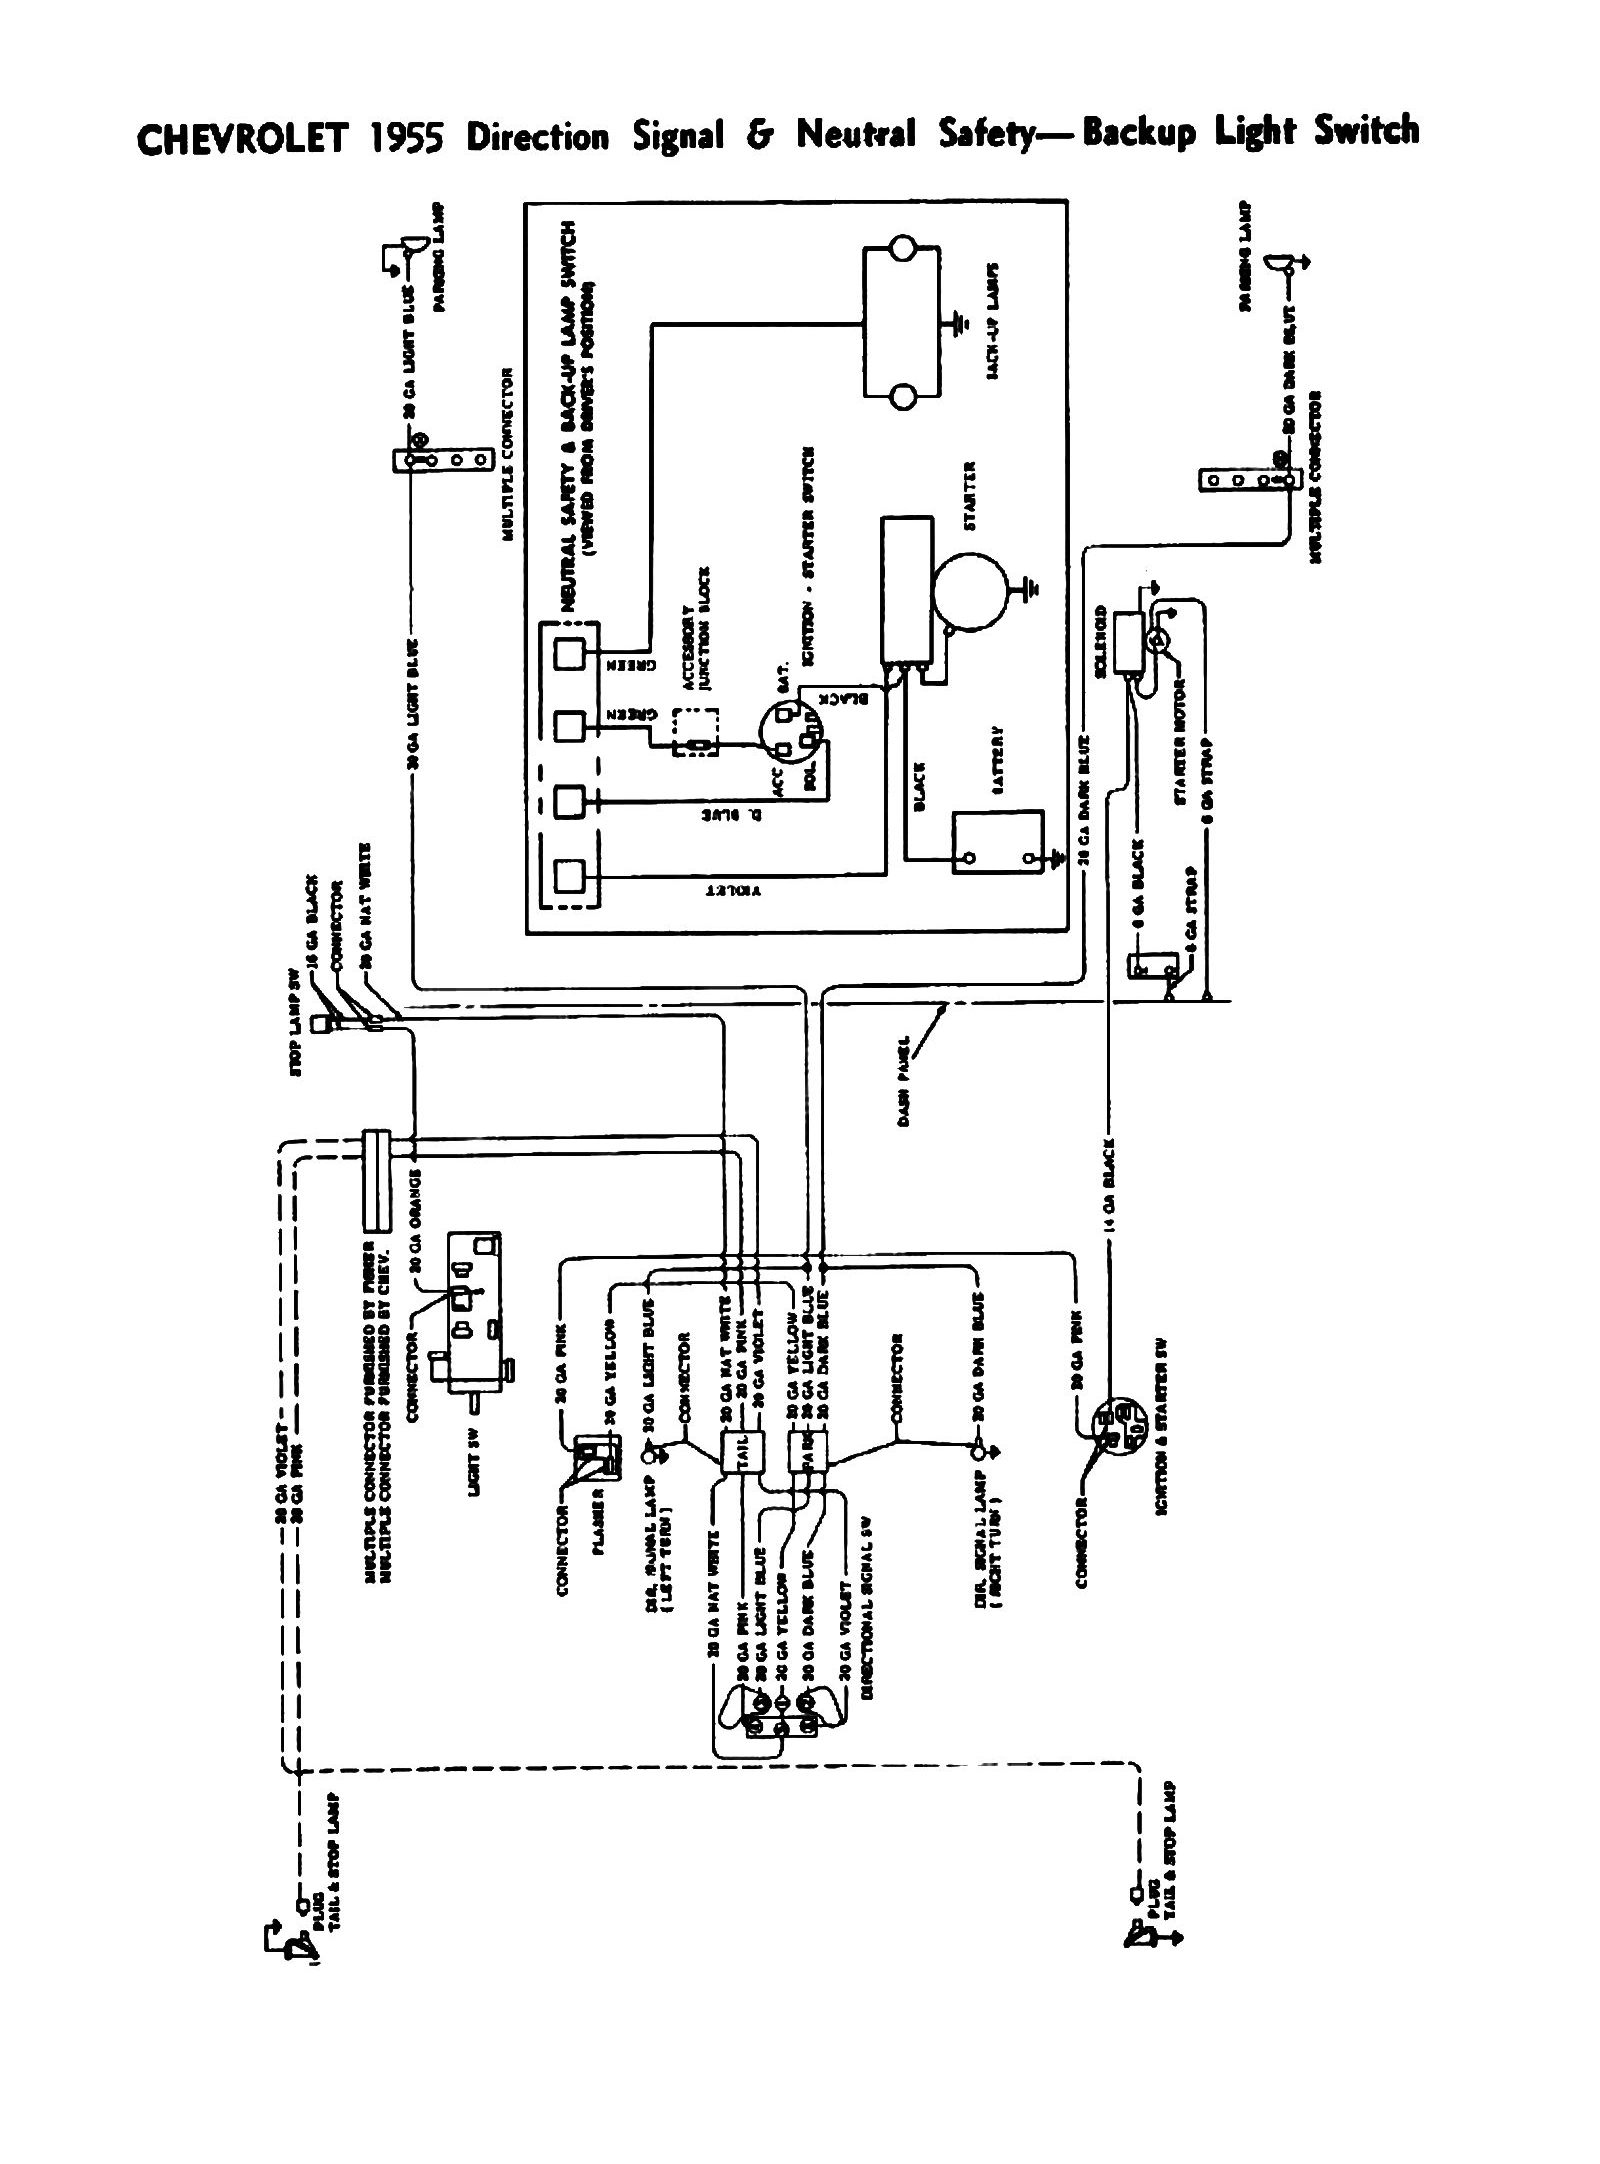 55signal wiring diagram for 1955 chevy bel air readingrat net 1957 chevrolet wiring diagram at gsmx.co